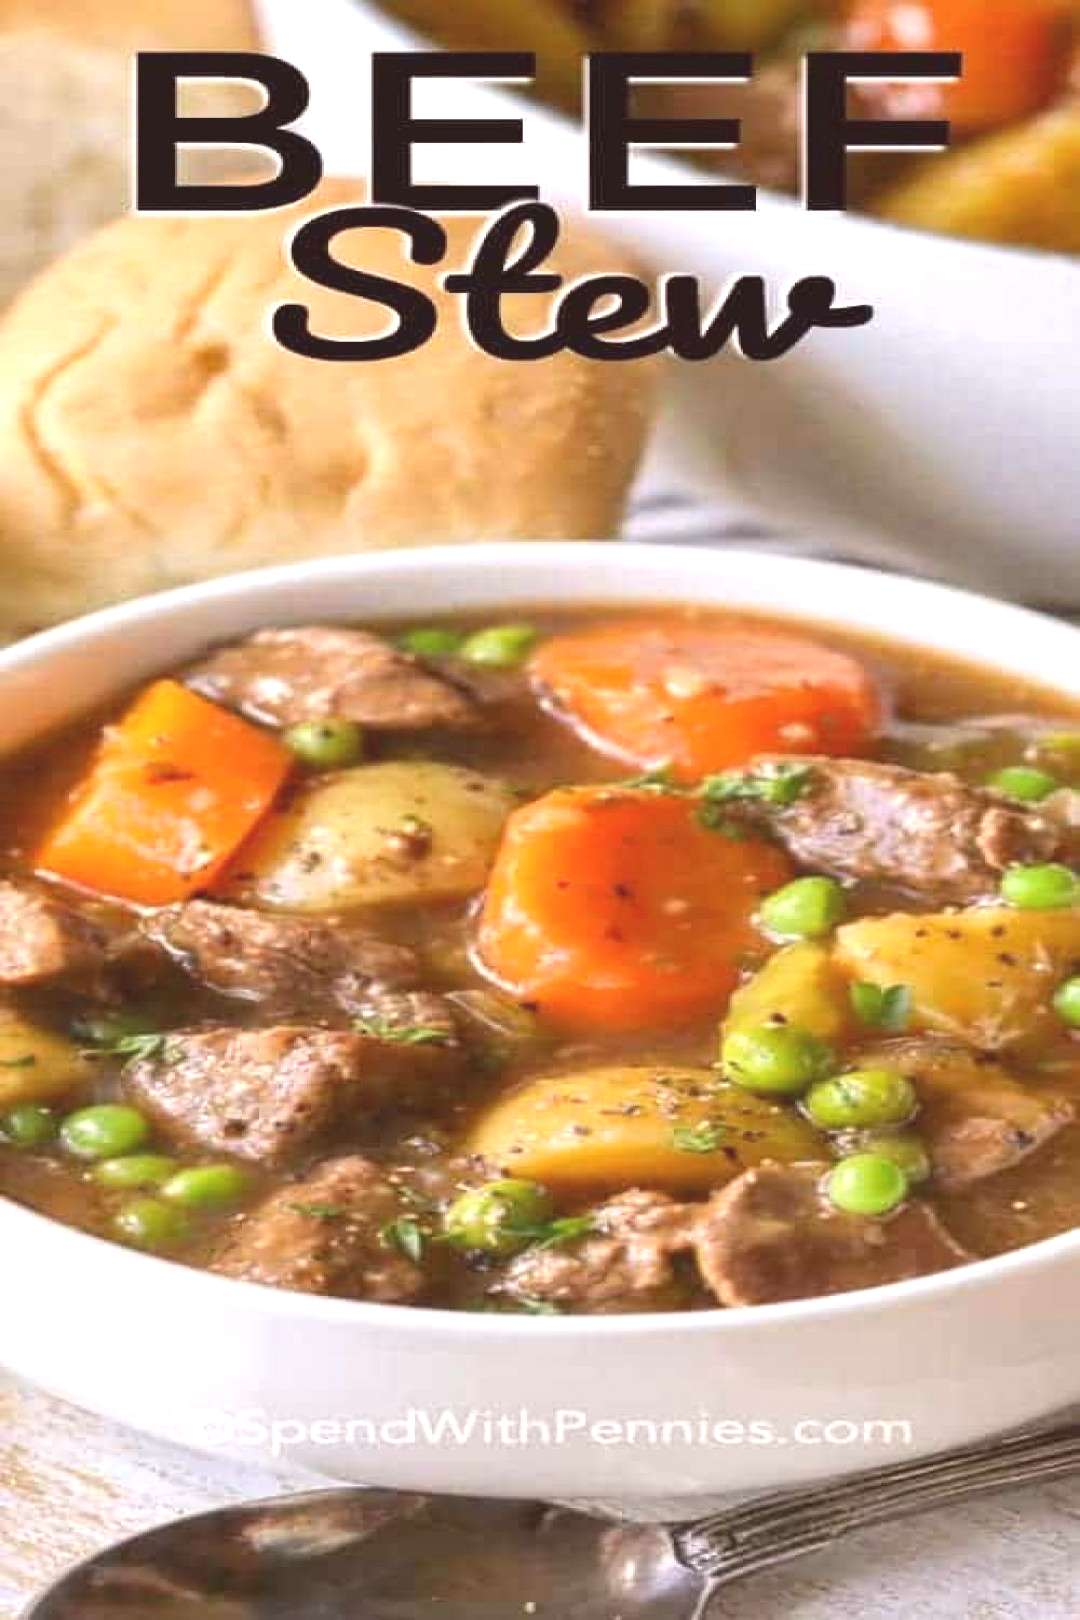 Beef Stew Recipe Homemade amp Flavorful - Spend With Pennies - Hamburger meat recipes -